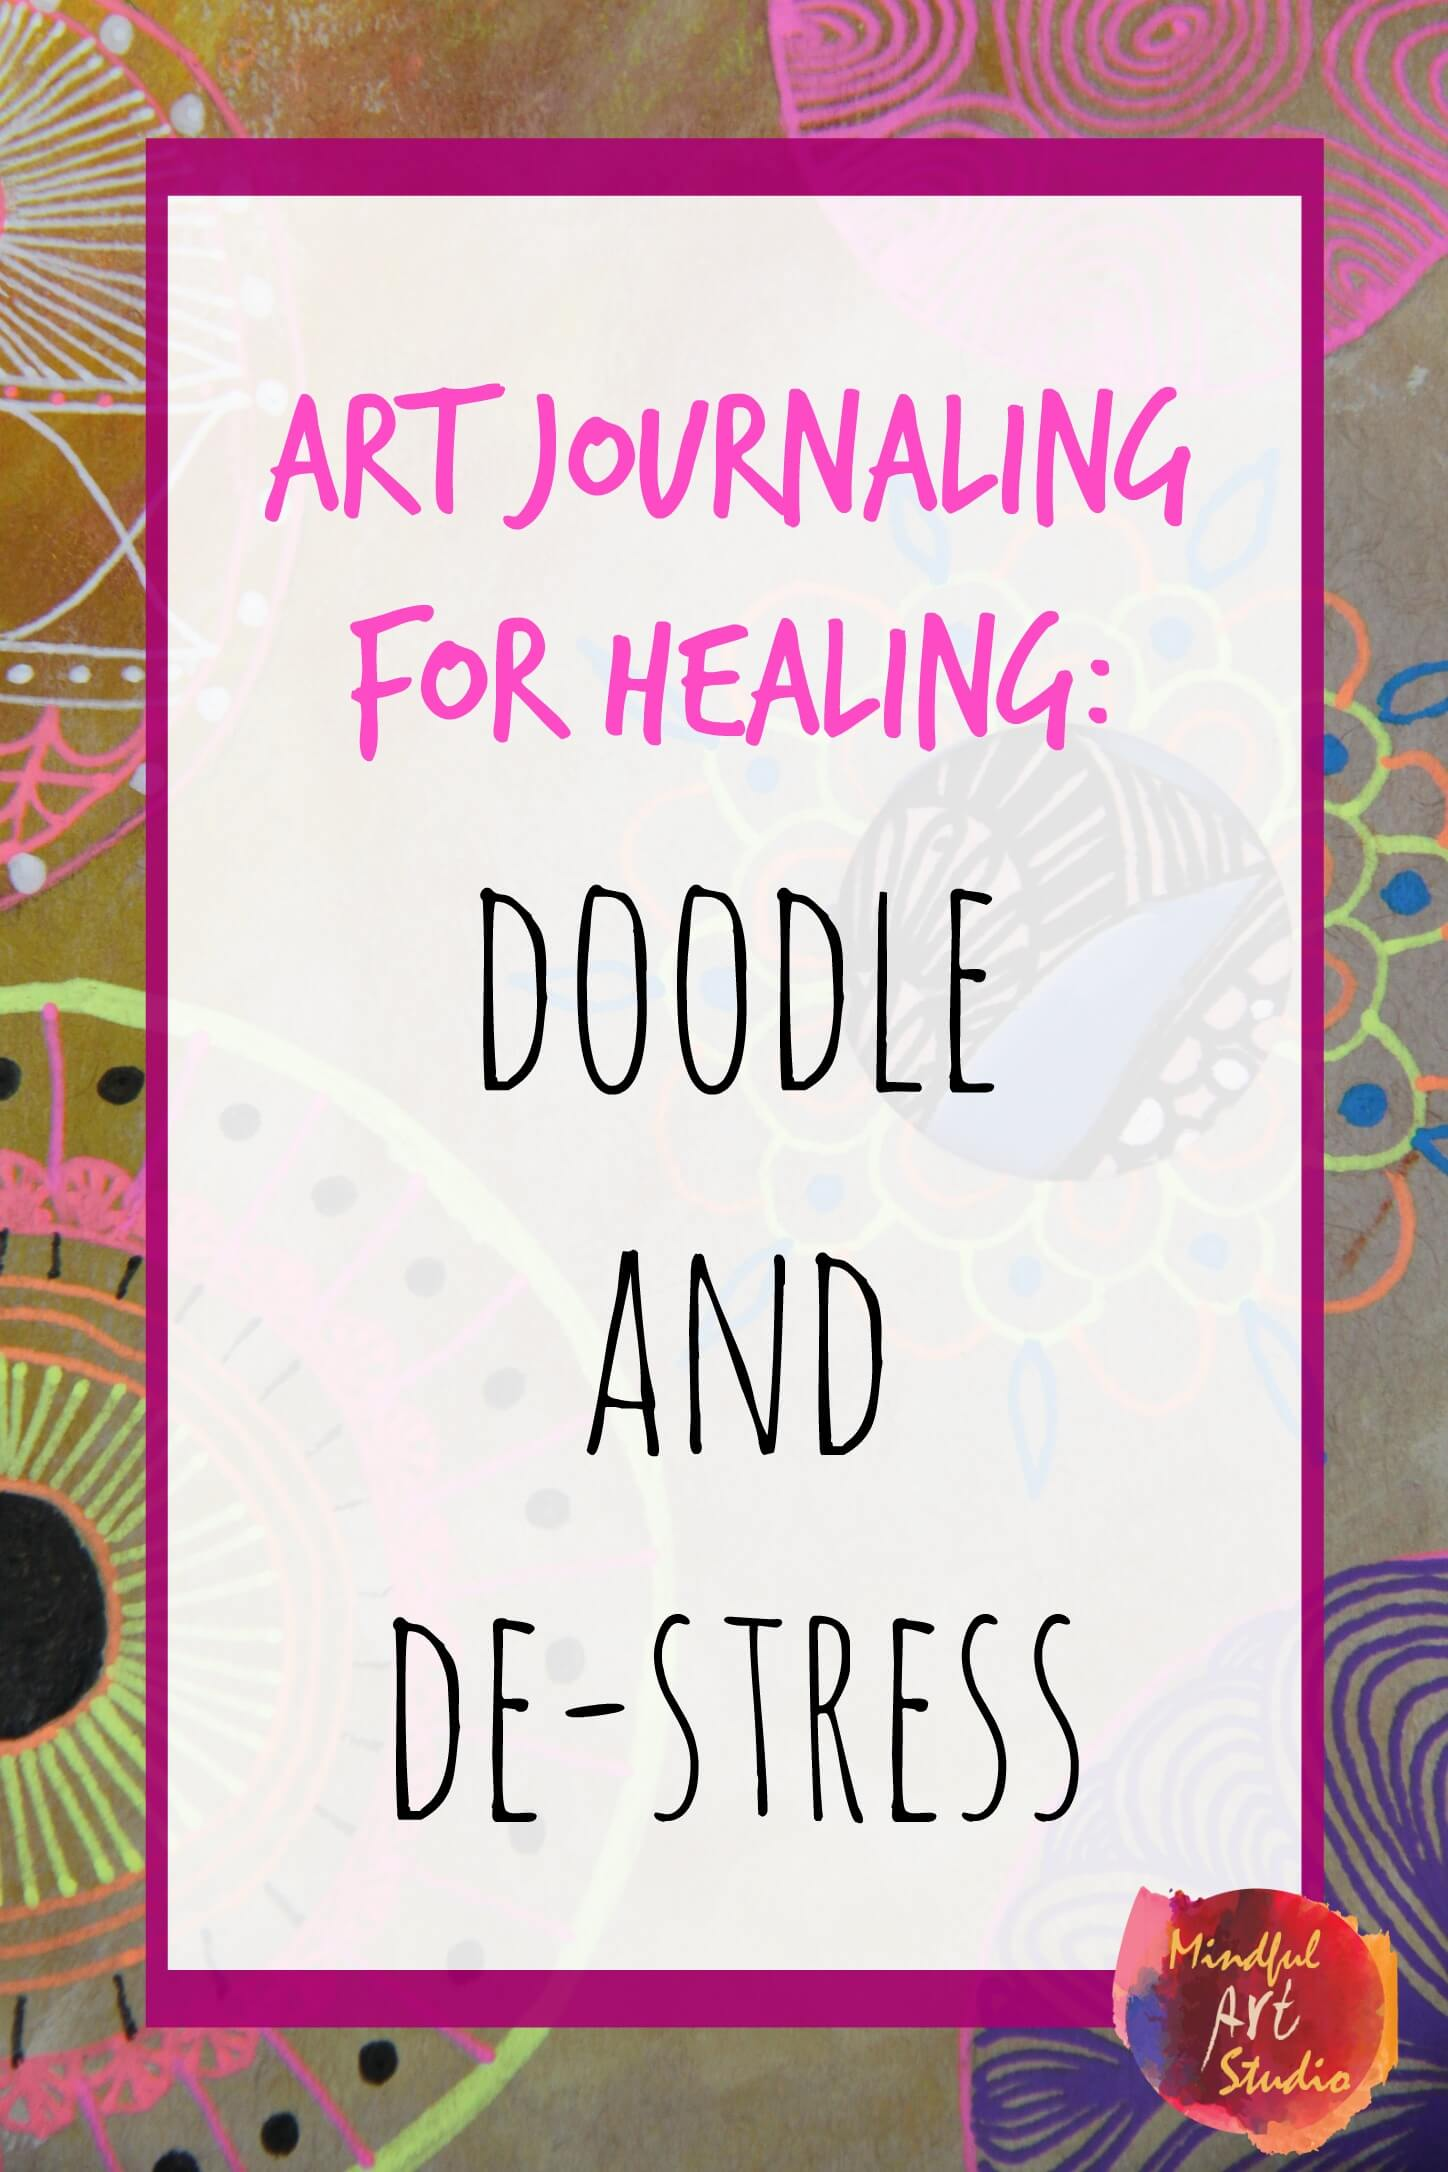 Art Journaling for Healing: Doodle and De-Stress